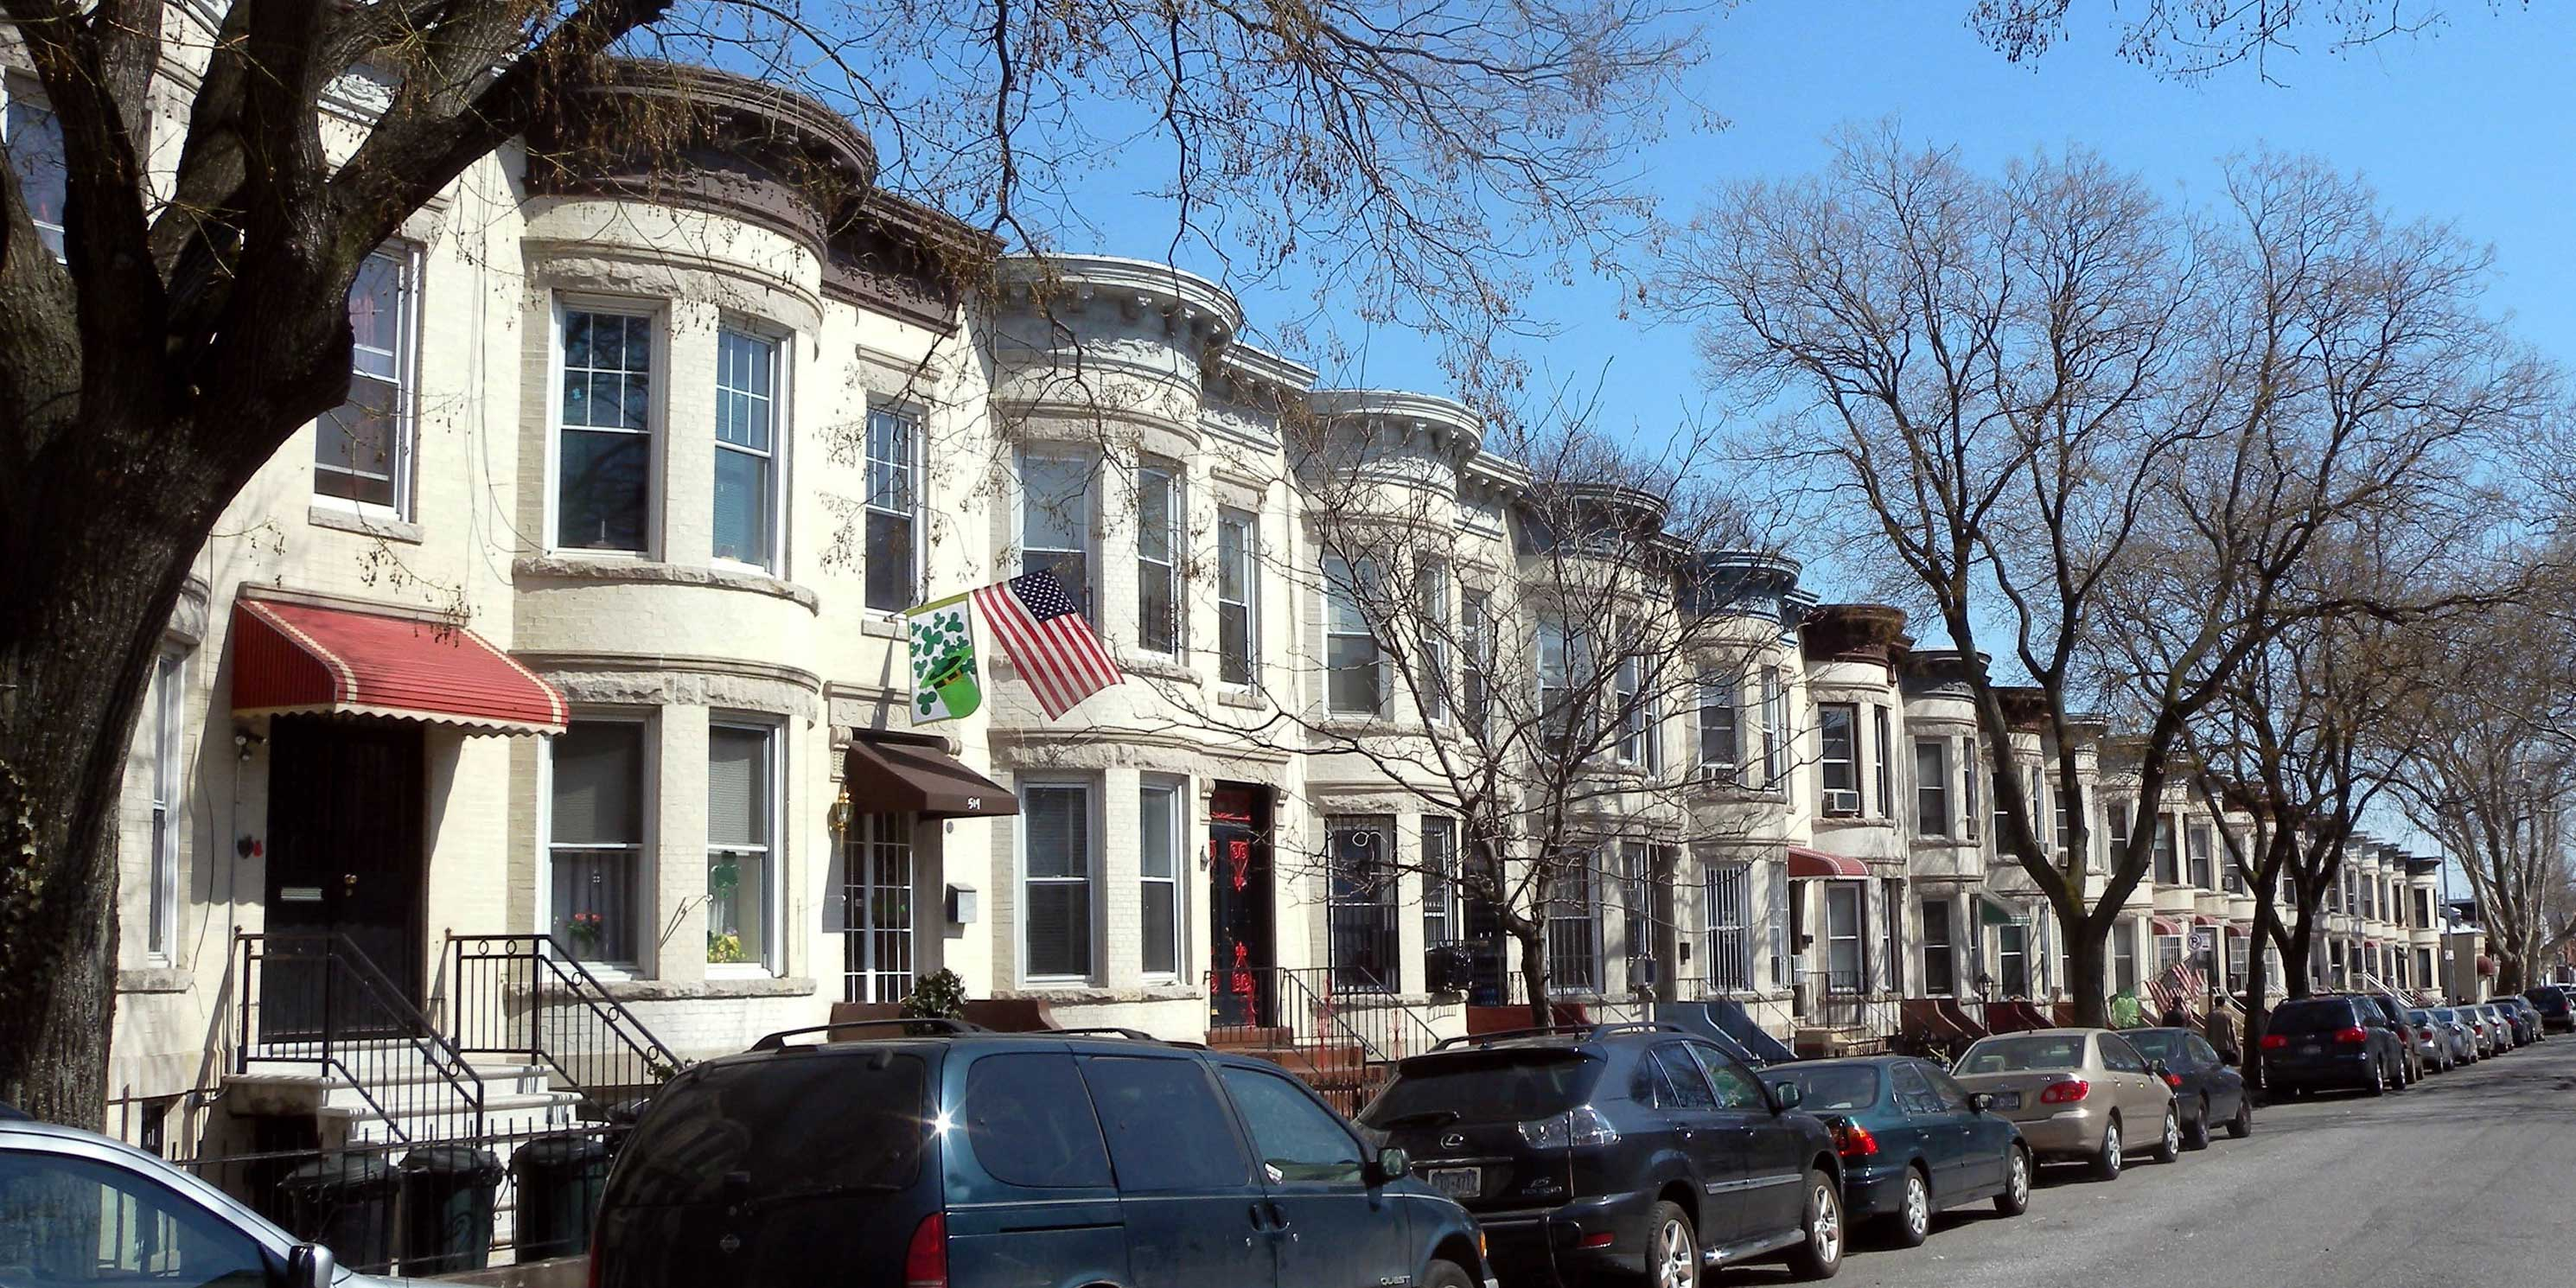 rowhouses on 62nd Street in Sunset Park, Brooklyn